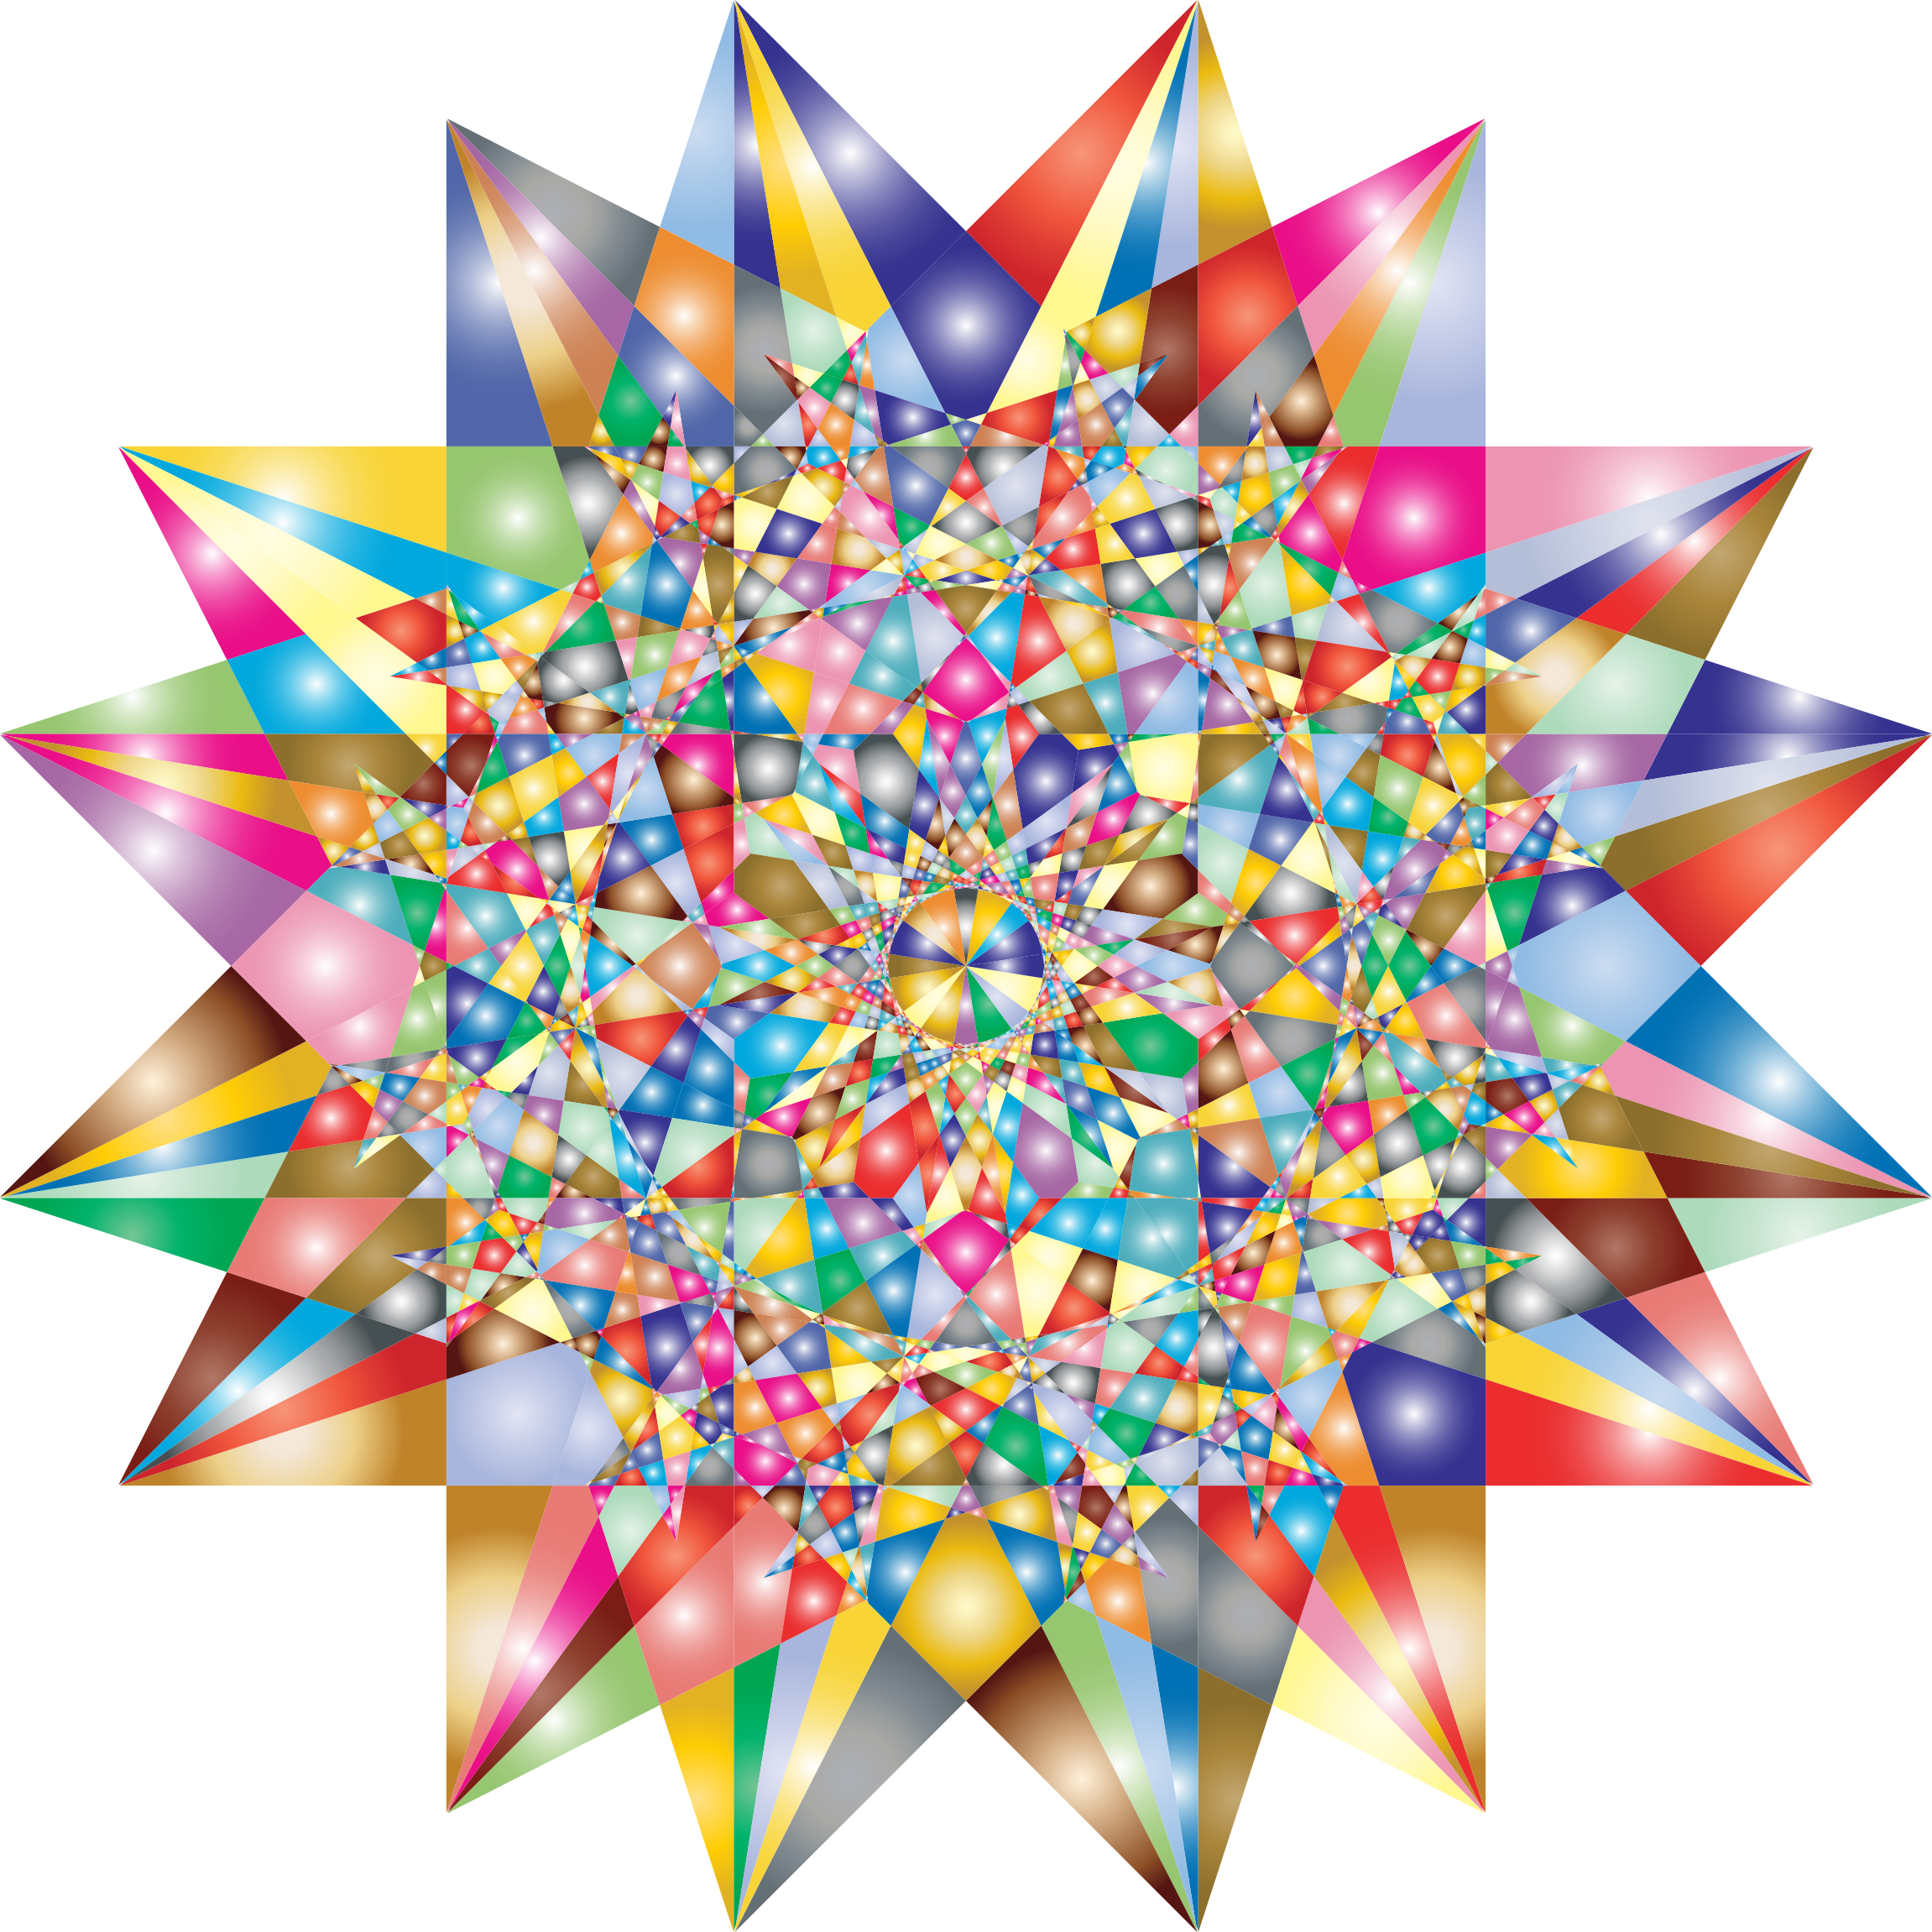 Colorful Geometric Star 6 Variation 2 by GDJ